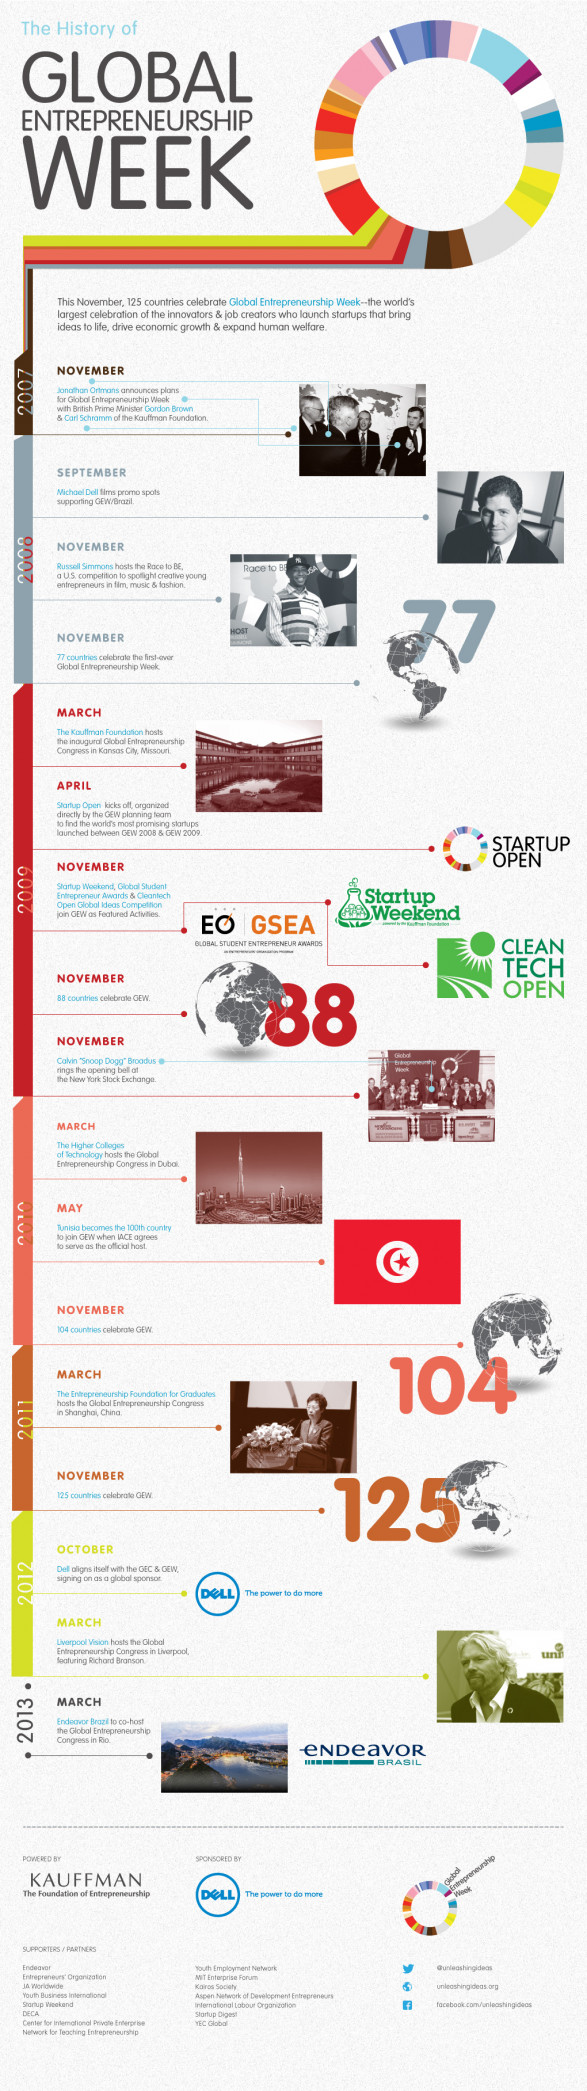 The History of Global Entrepreneurship Week